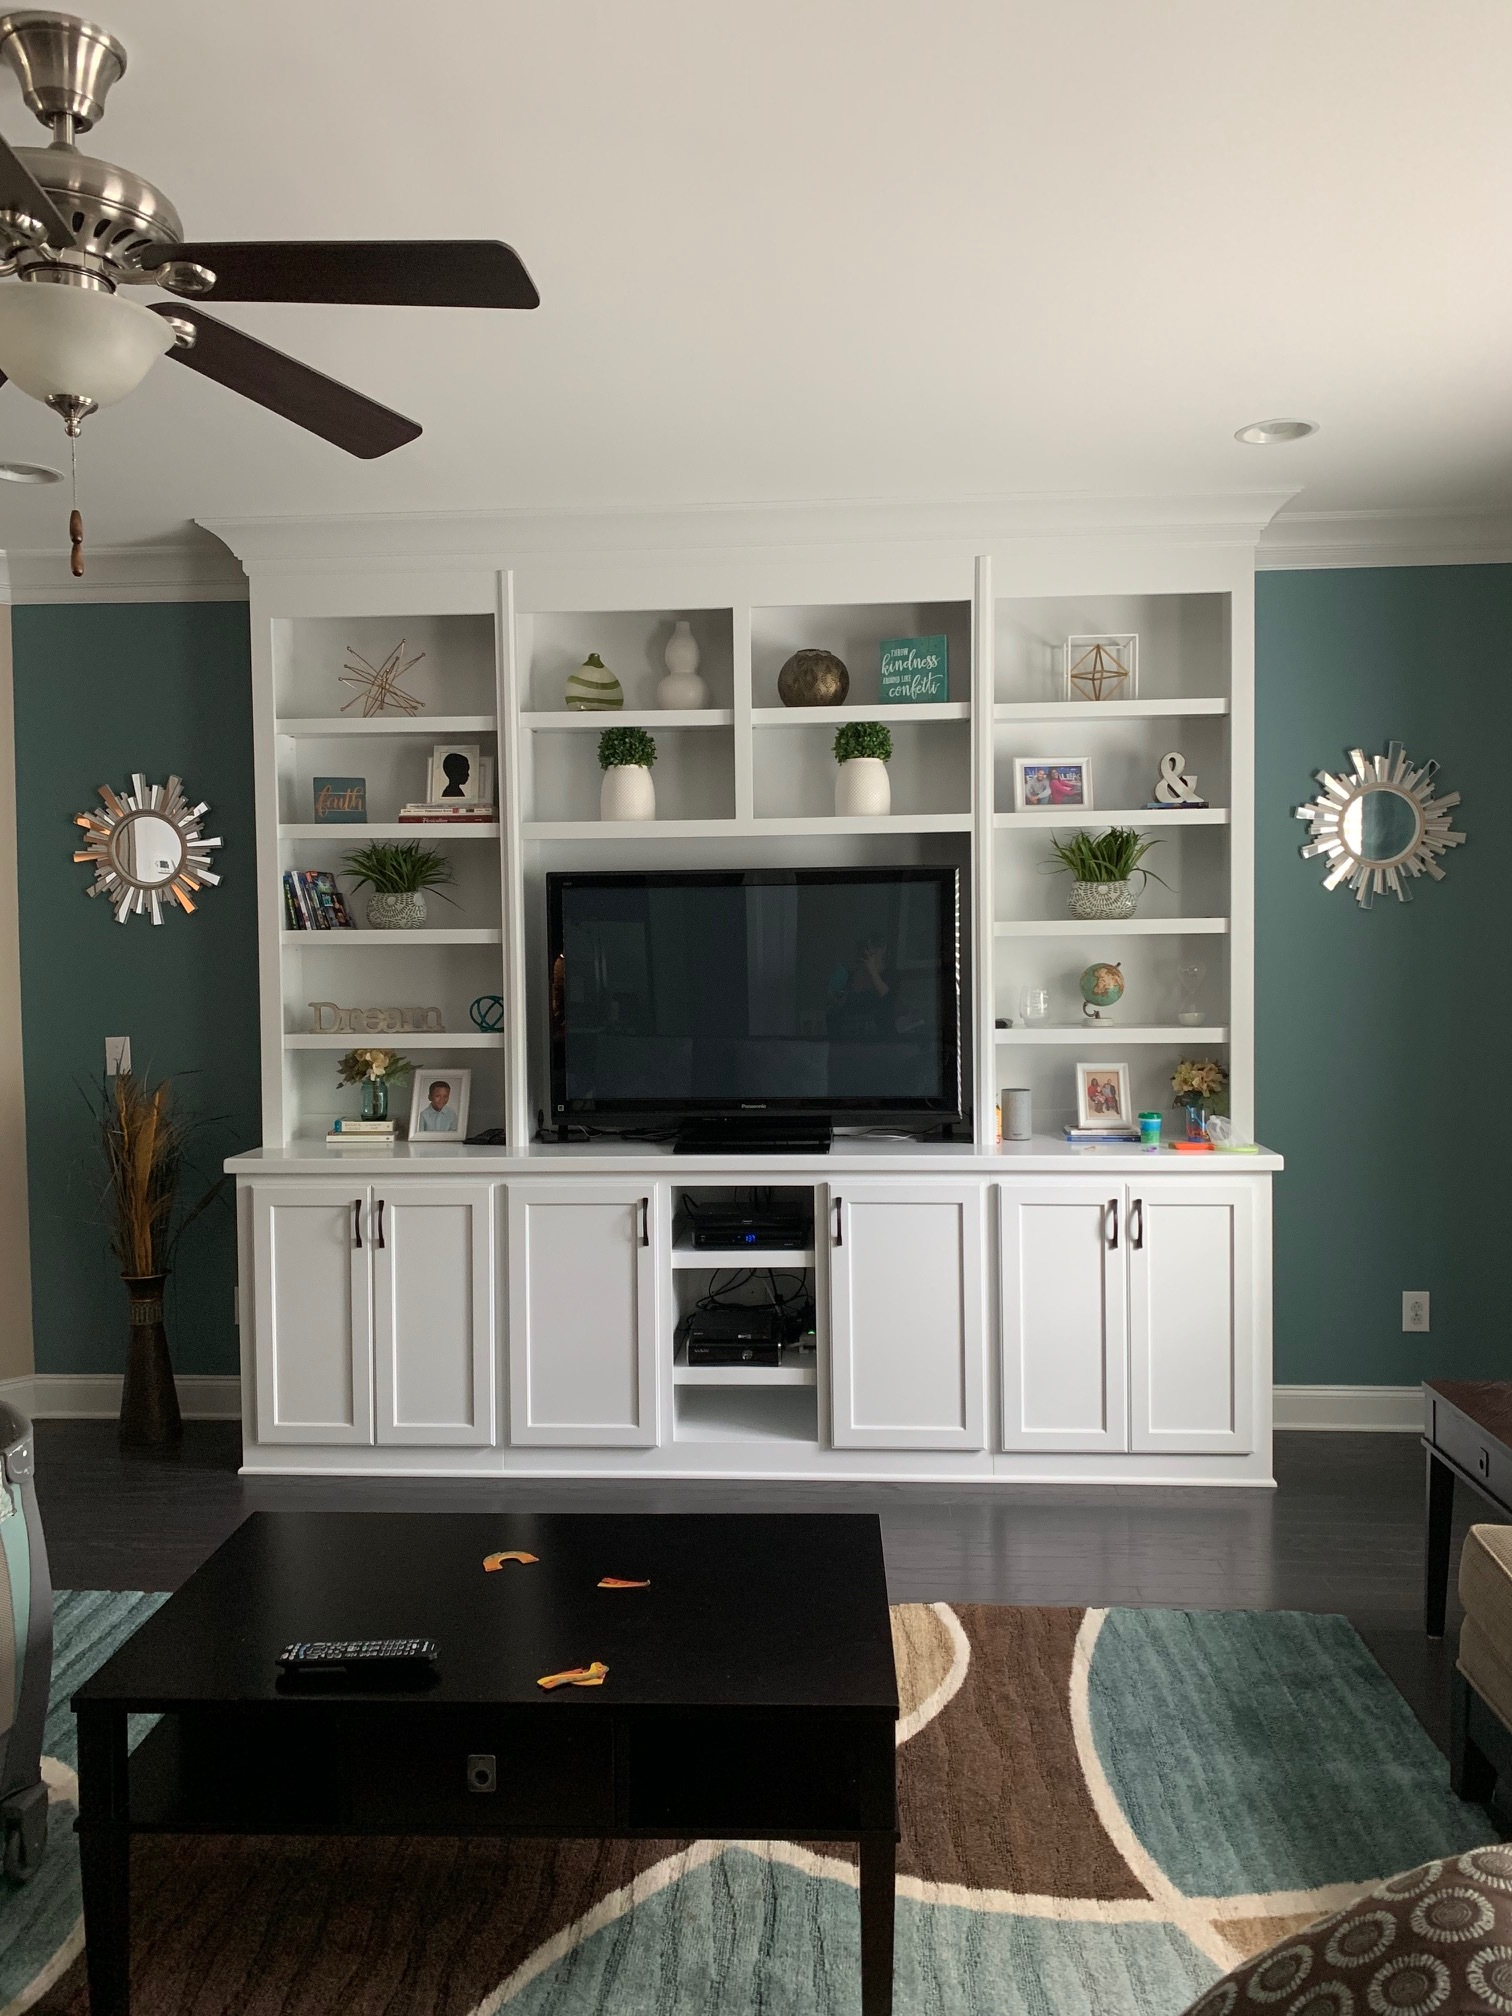 Living Room Built-In with TV Opening, Shaker Doors, Adjustable Shelves, Component Openings, and Crown